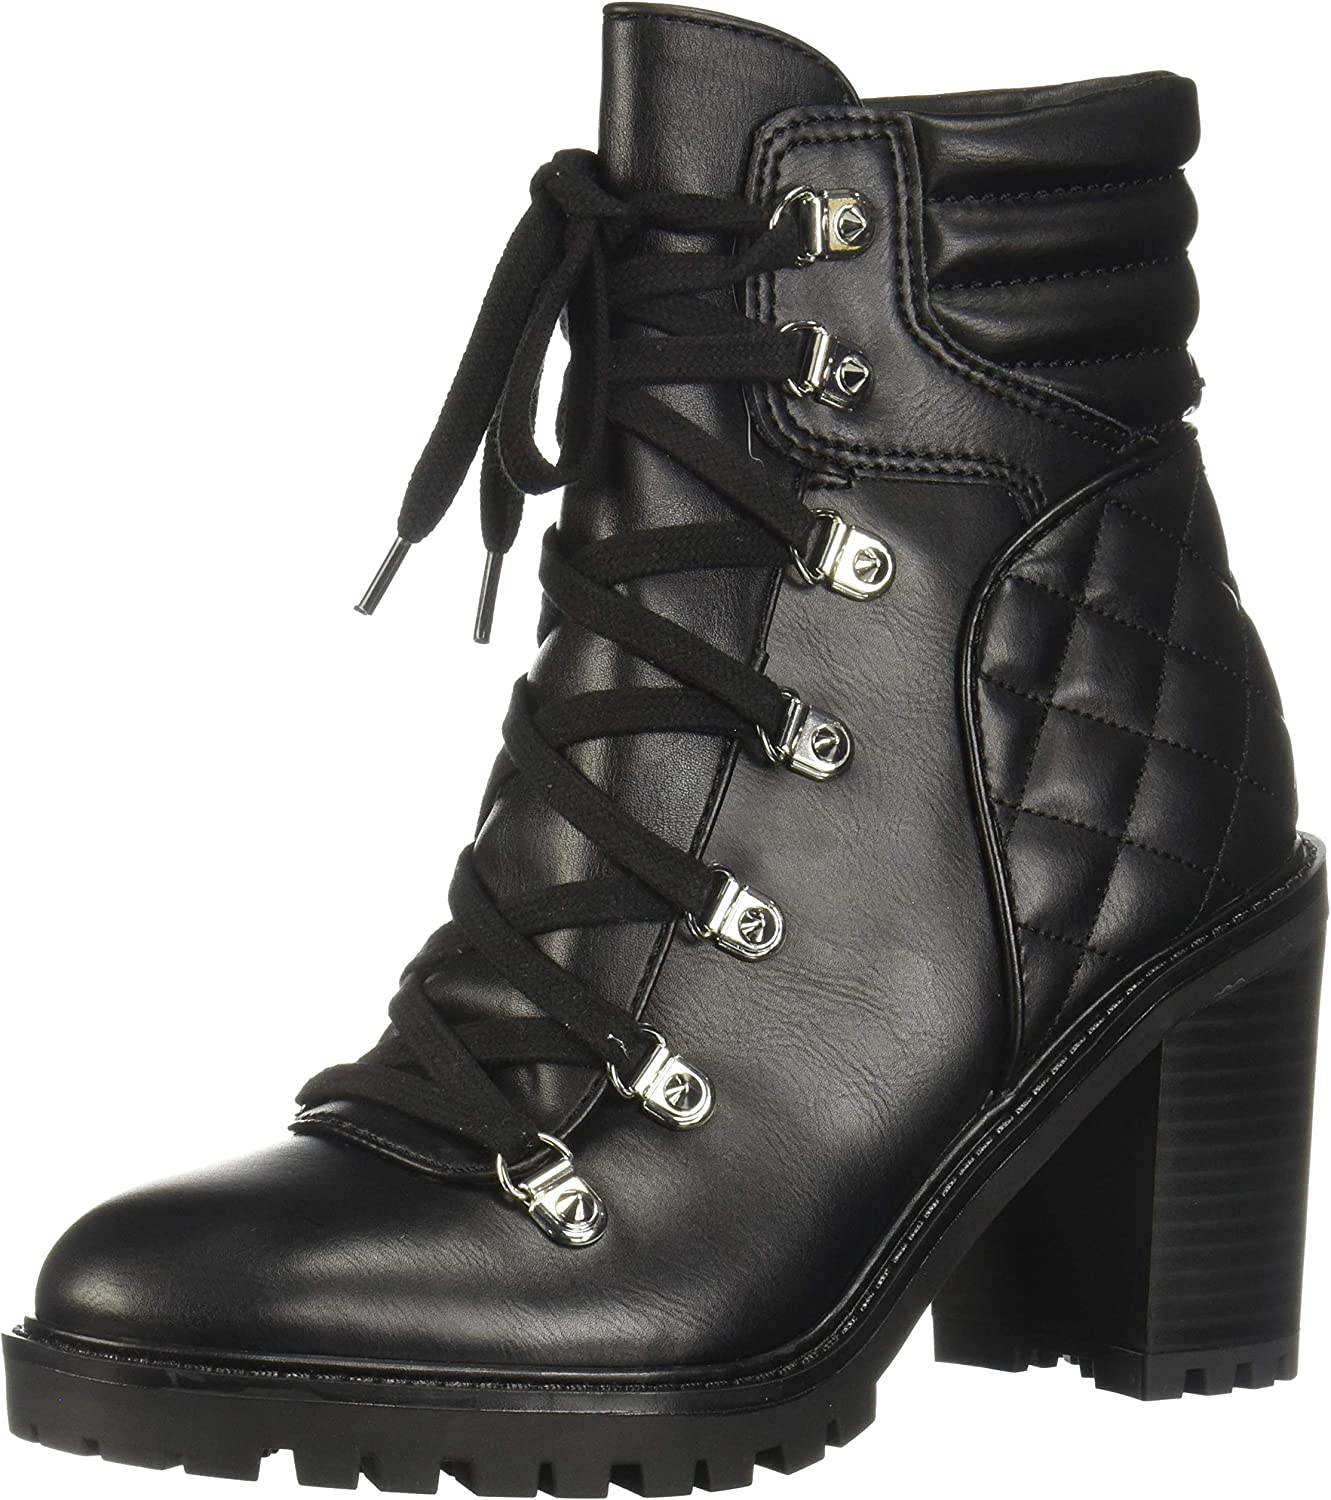 GUESS Women's Geegee Quilted Faux-Leather Booties